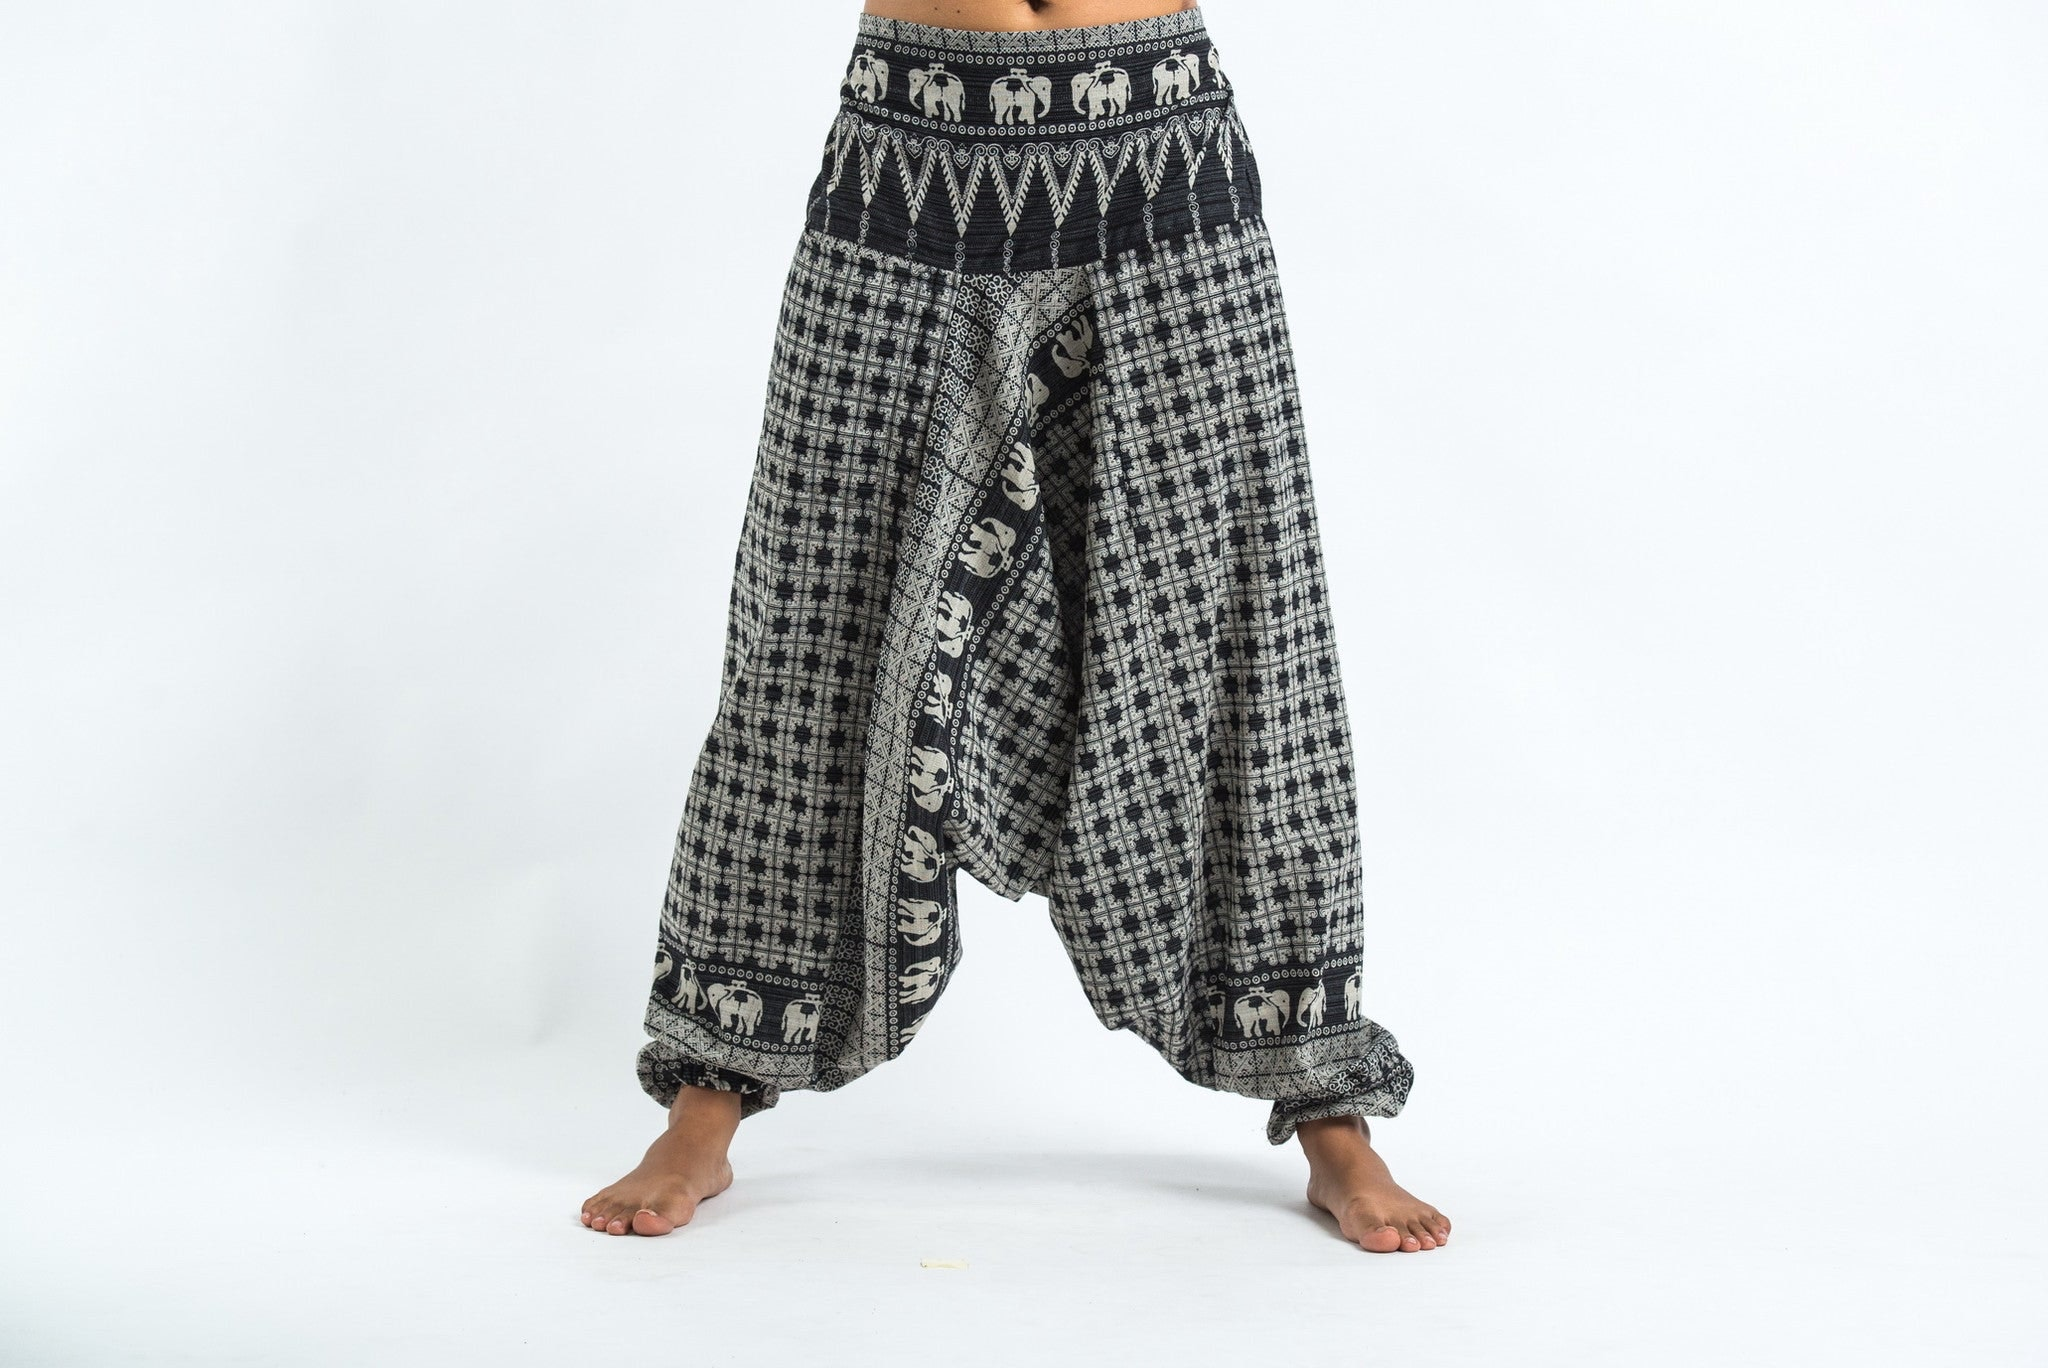 New Hill Tribe Elephants Women Harem Pants In Black